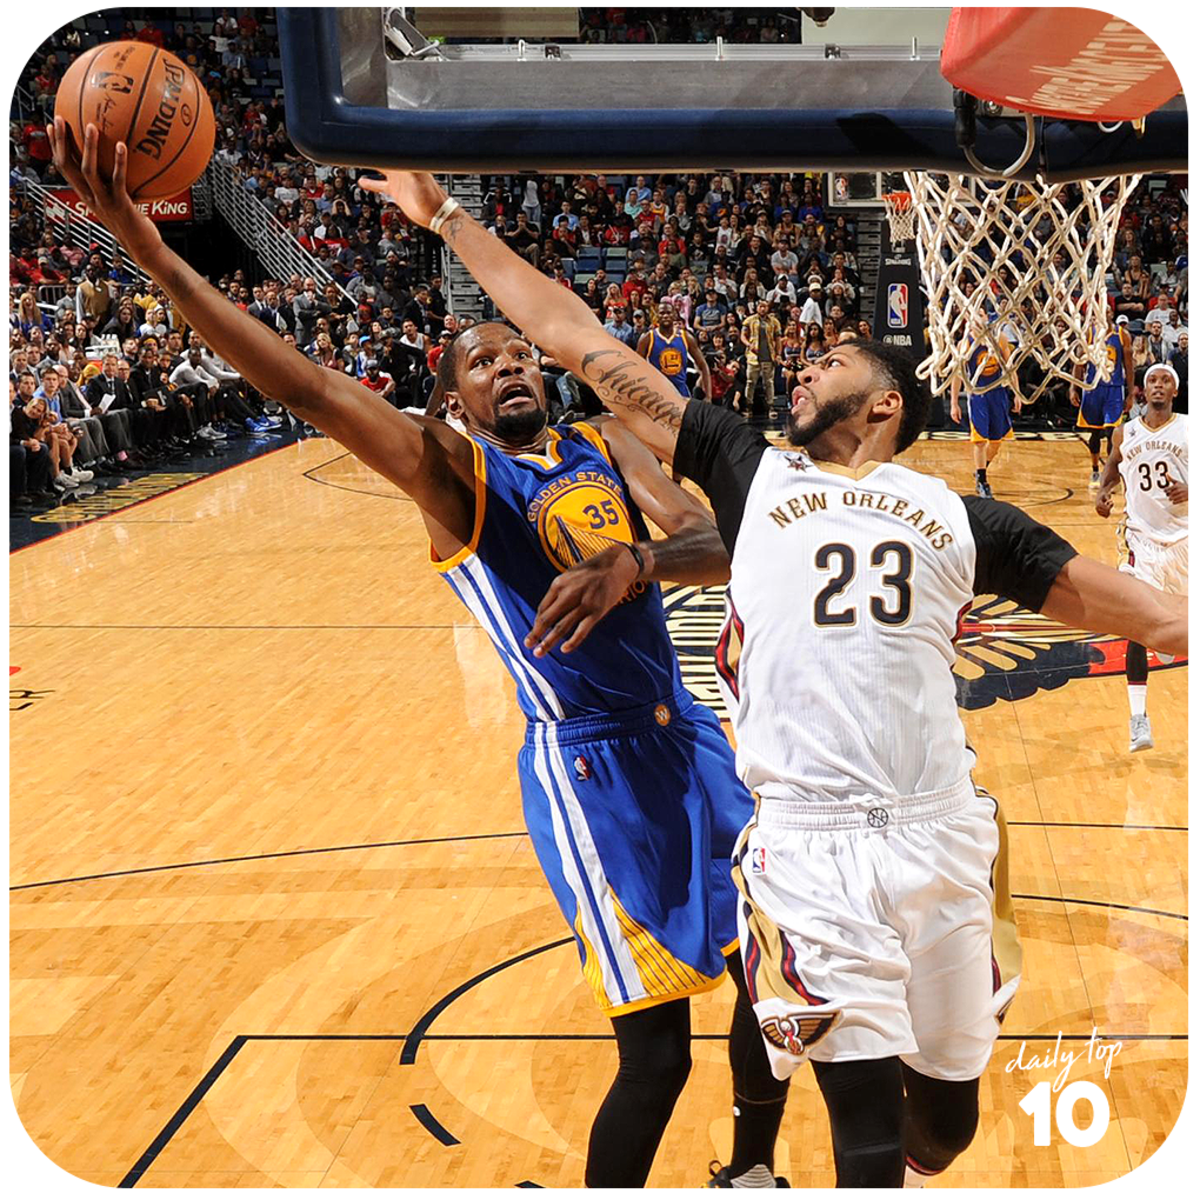 Kevin Durant making a lay up against Anthony Davis of the New Orleans Pelicans.